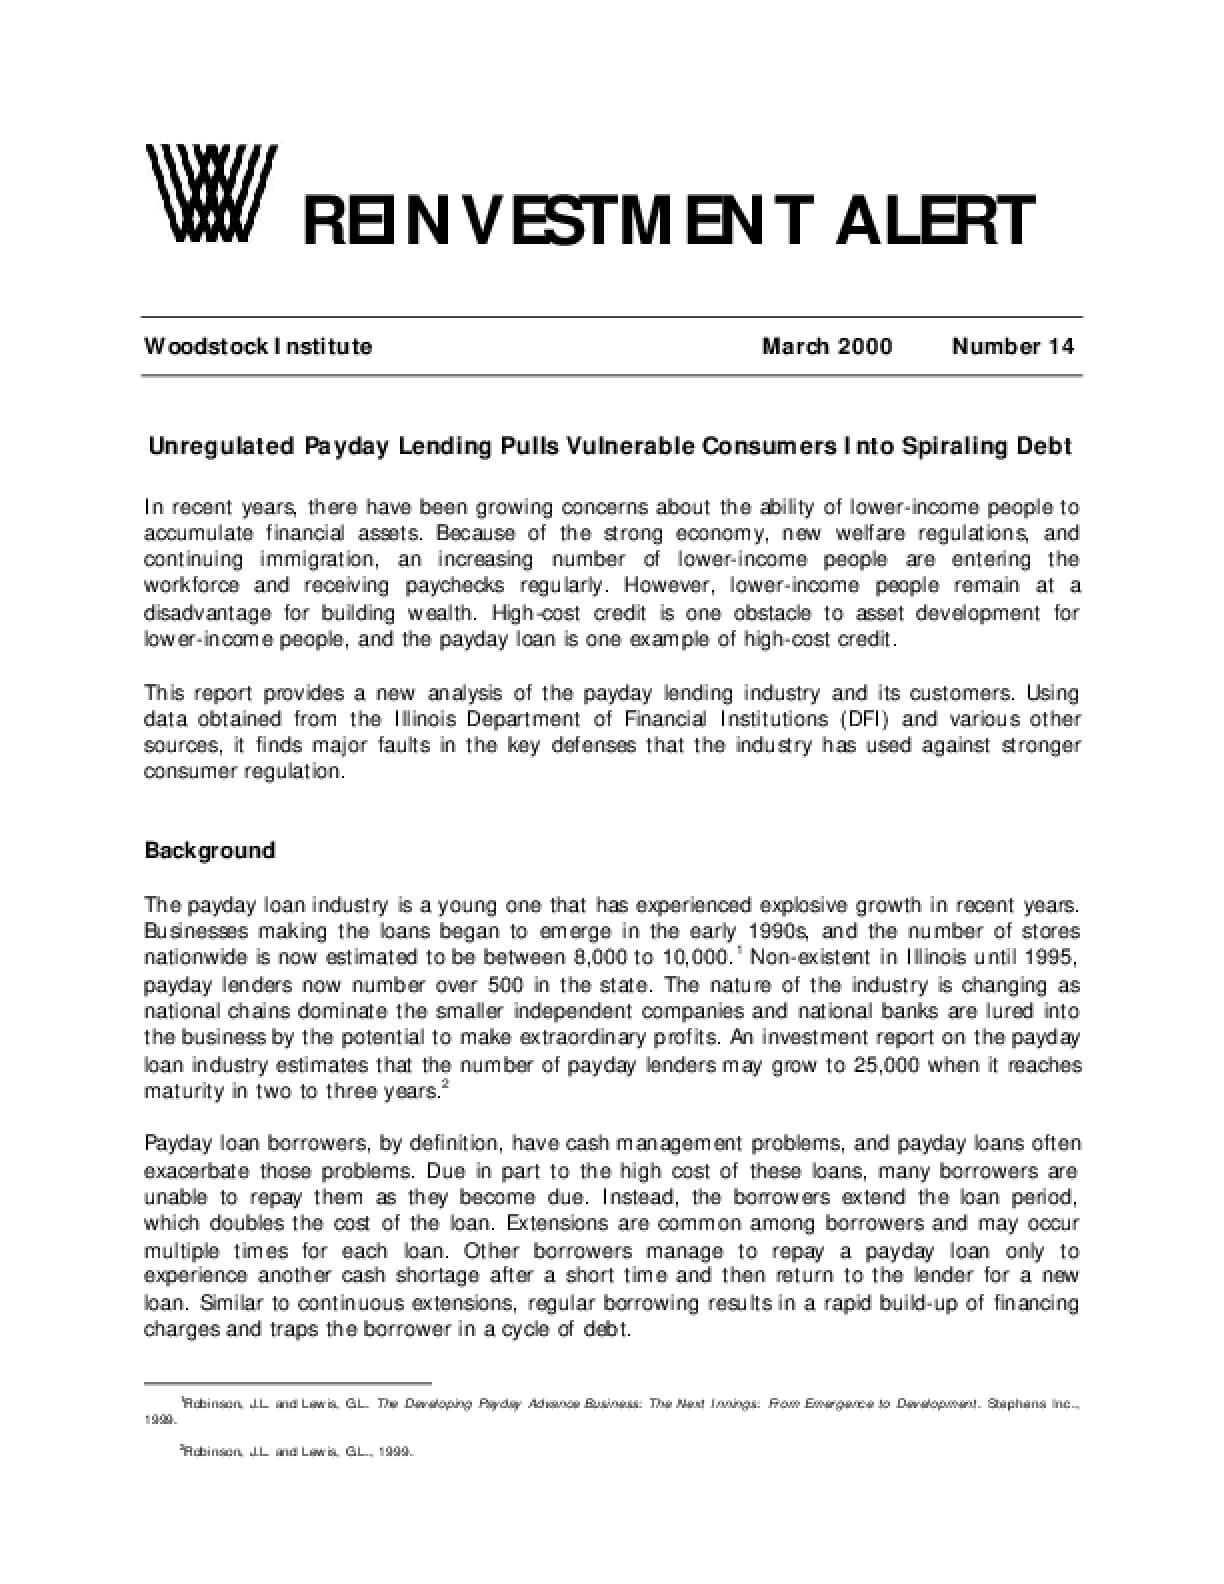 Reinvestment Alert 14:  Unregulated Payday Lending Pulls Vulnerable Consumers Into Spiraling Debt